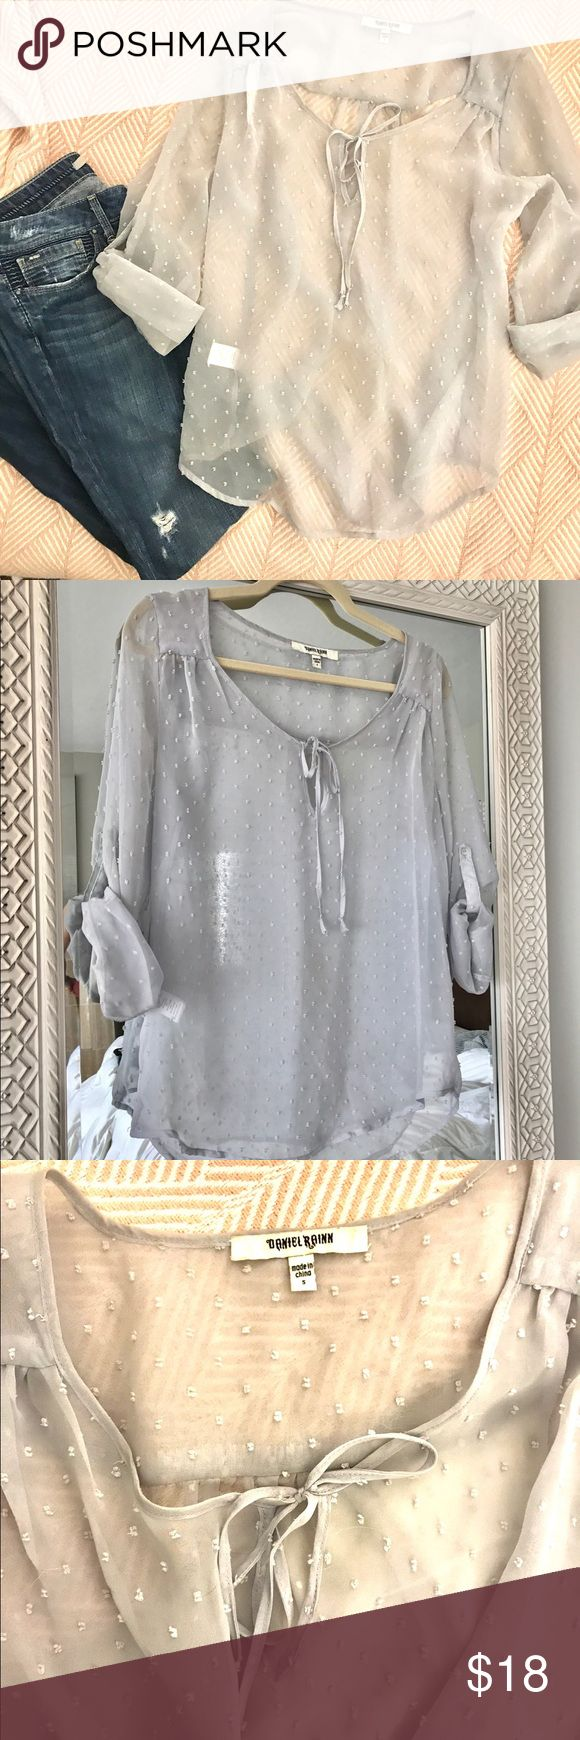 Daniel Rain Peasant Blouse - Sheer Grey Pre-loved and gently worn Daniel Rainn dotted sheer grey peasant style blouse. Scoop neck. Peekaboo eyelet. Bohemian. Pair with jeans and heels for a perfect daylight to evening transitional outfit! Daniel Rainn Tops Blouses